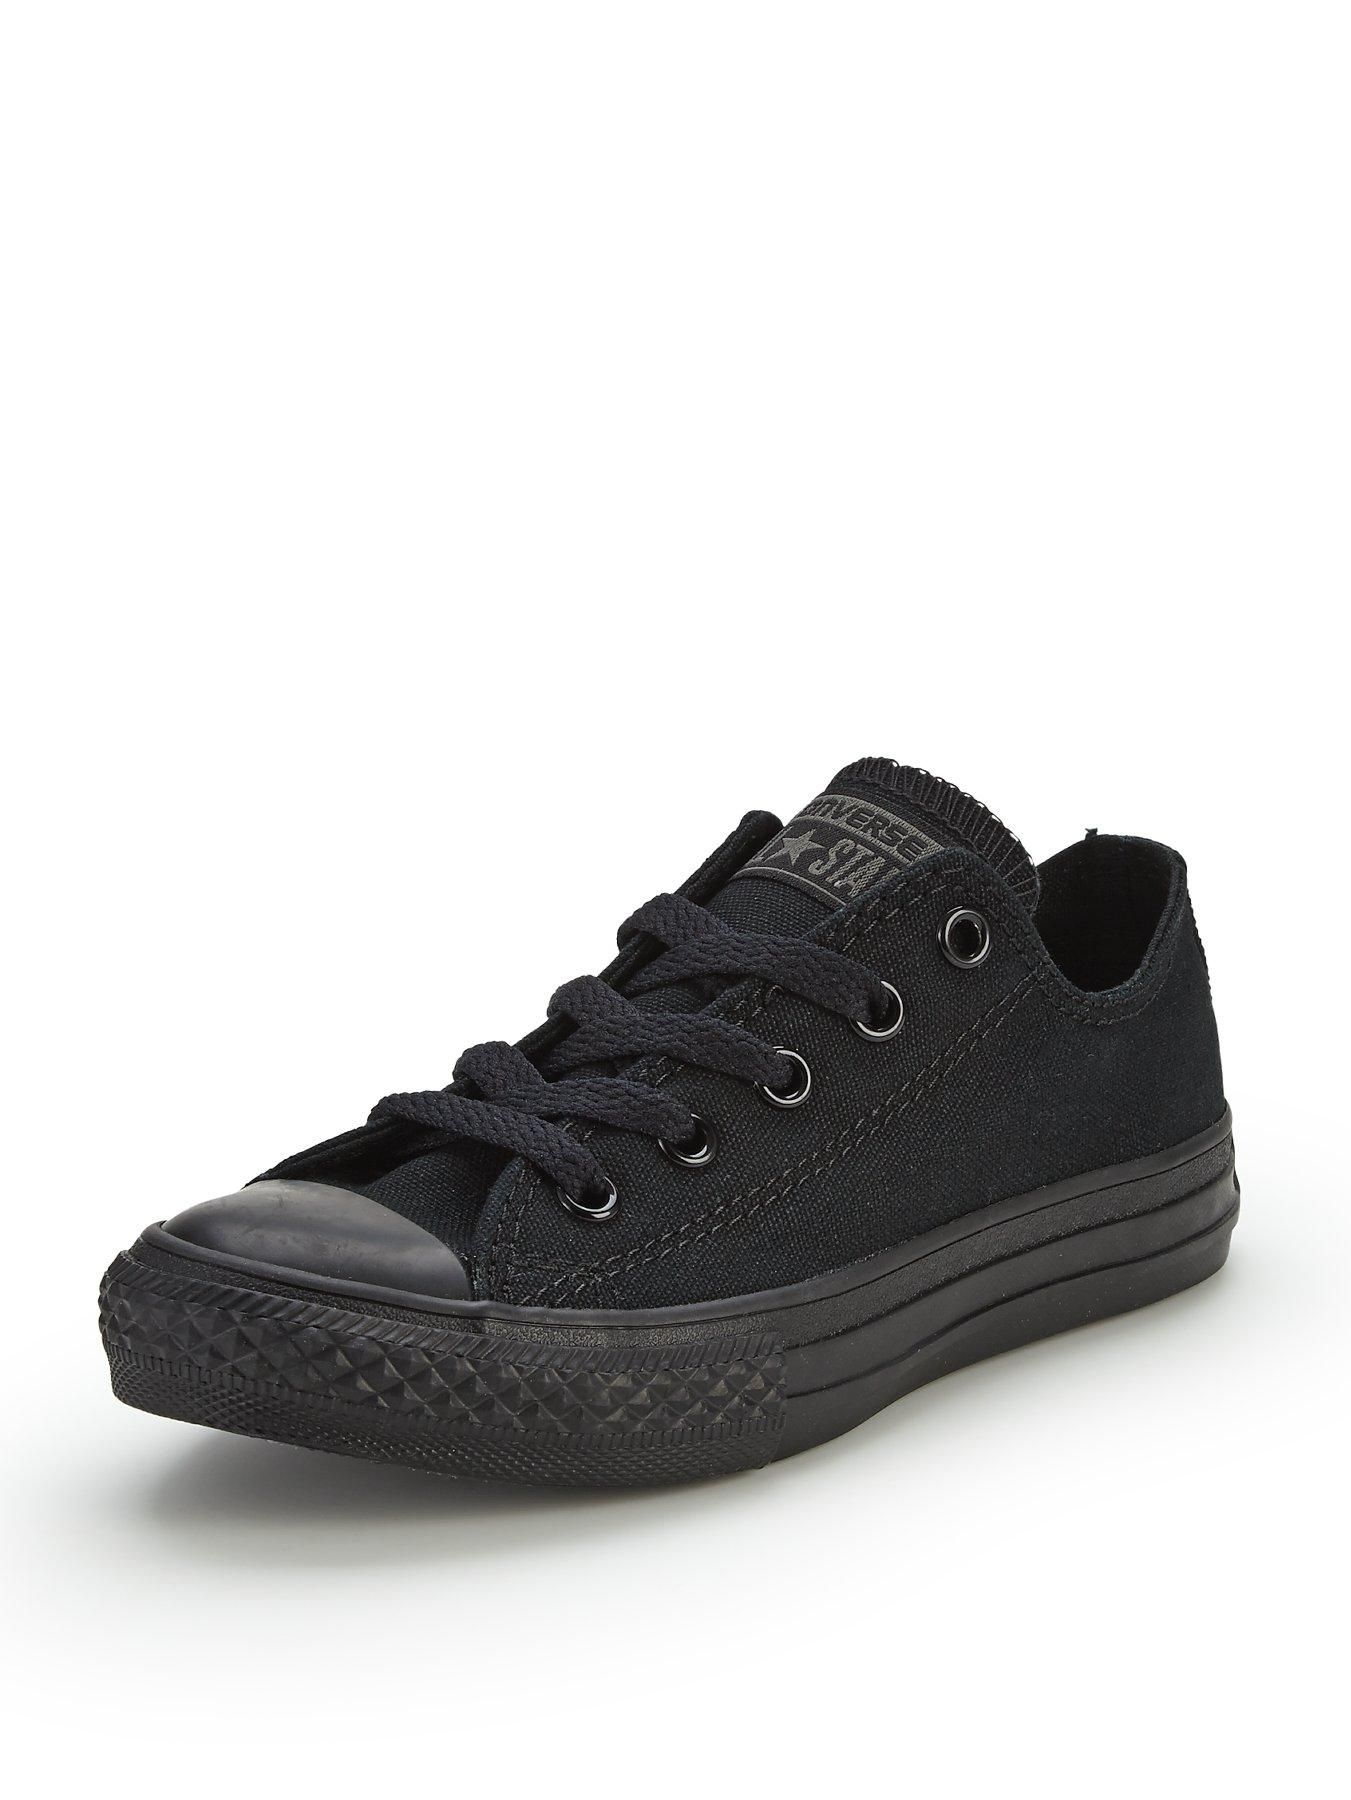 Converse chuck taylor all star ox trainers in core black